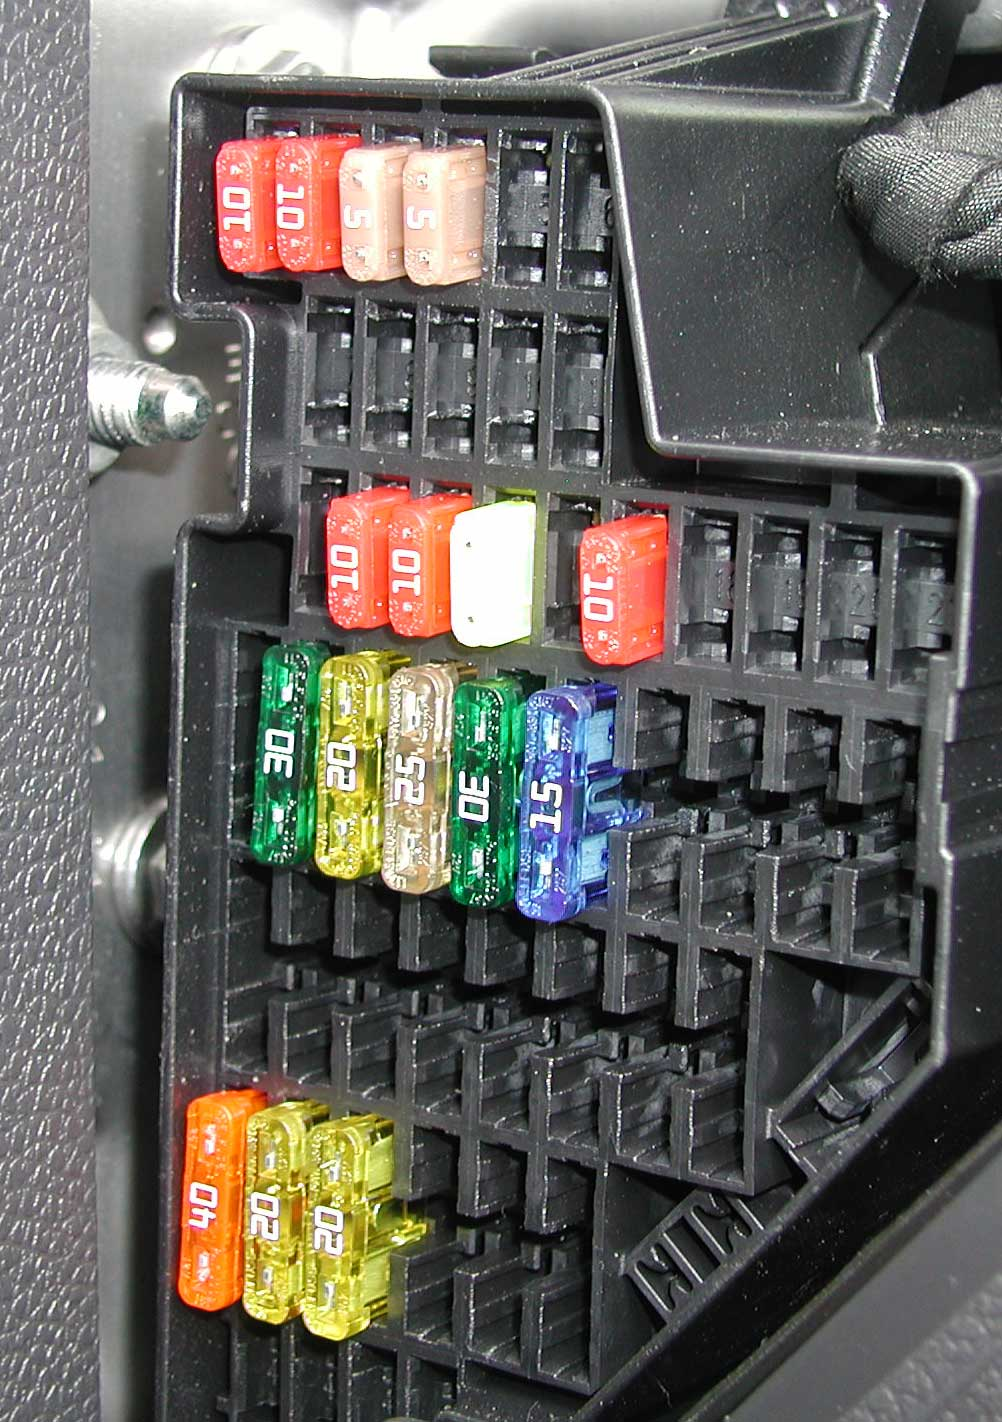 fuses2 2011 golf tdi fuse box (picture please!!!) tdiclub forums 2013 vw golf fuse box diagram at bakdesigns.co